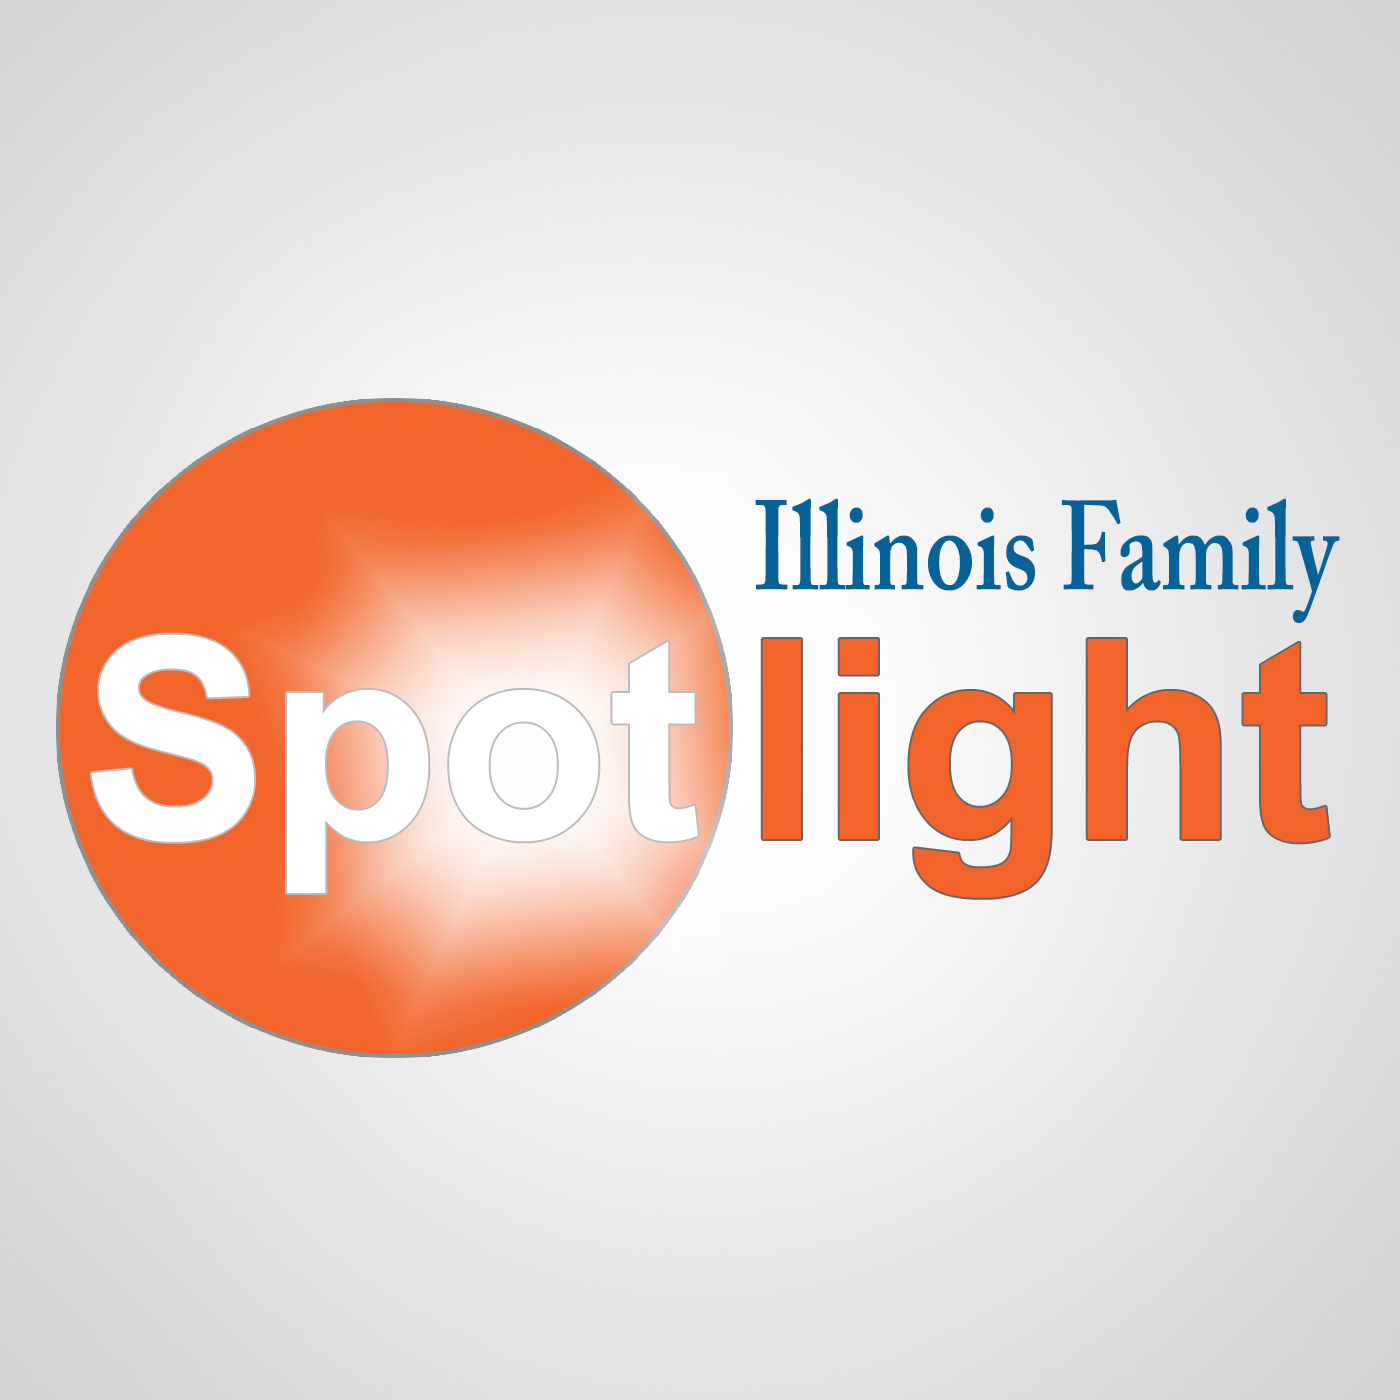 Illinois Family Spotlight